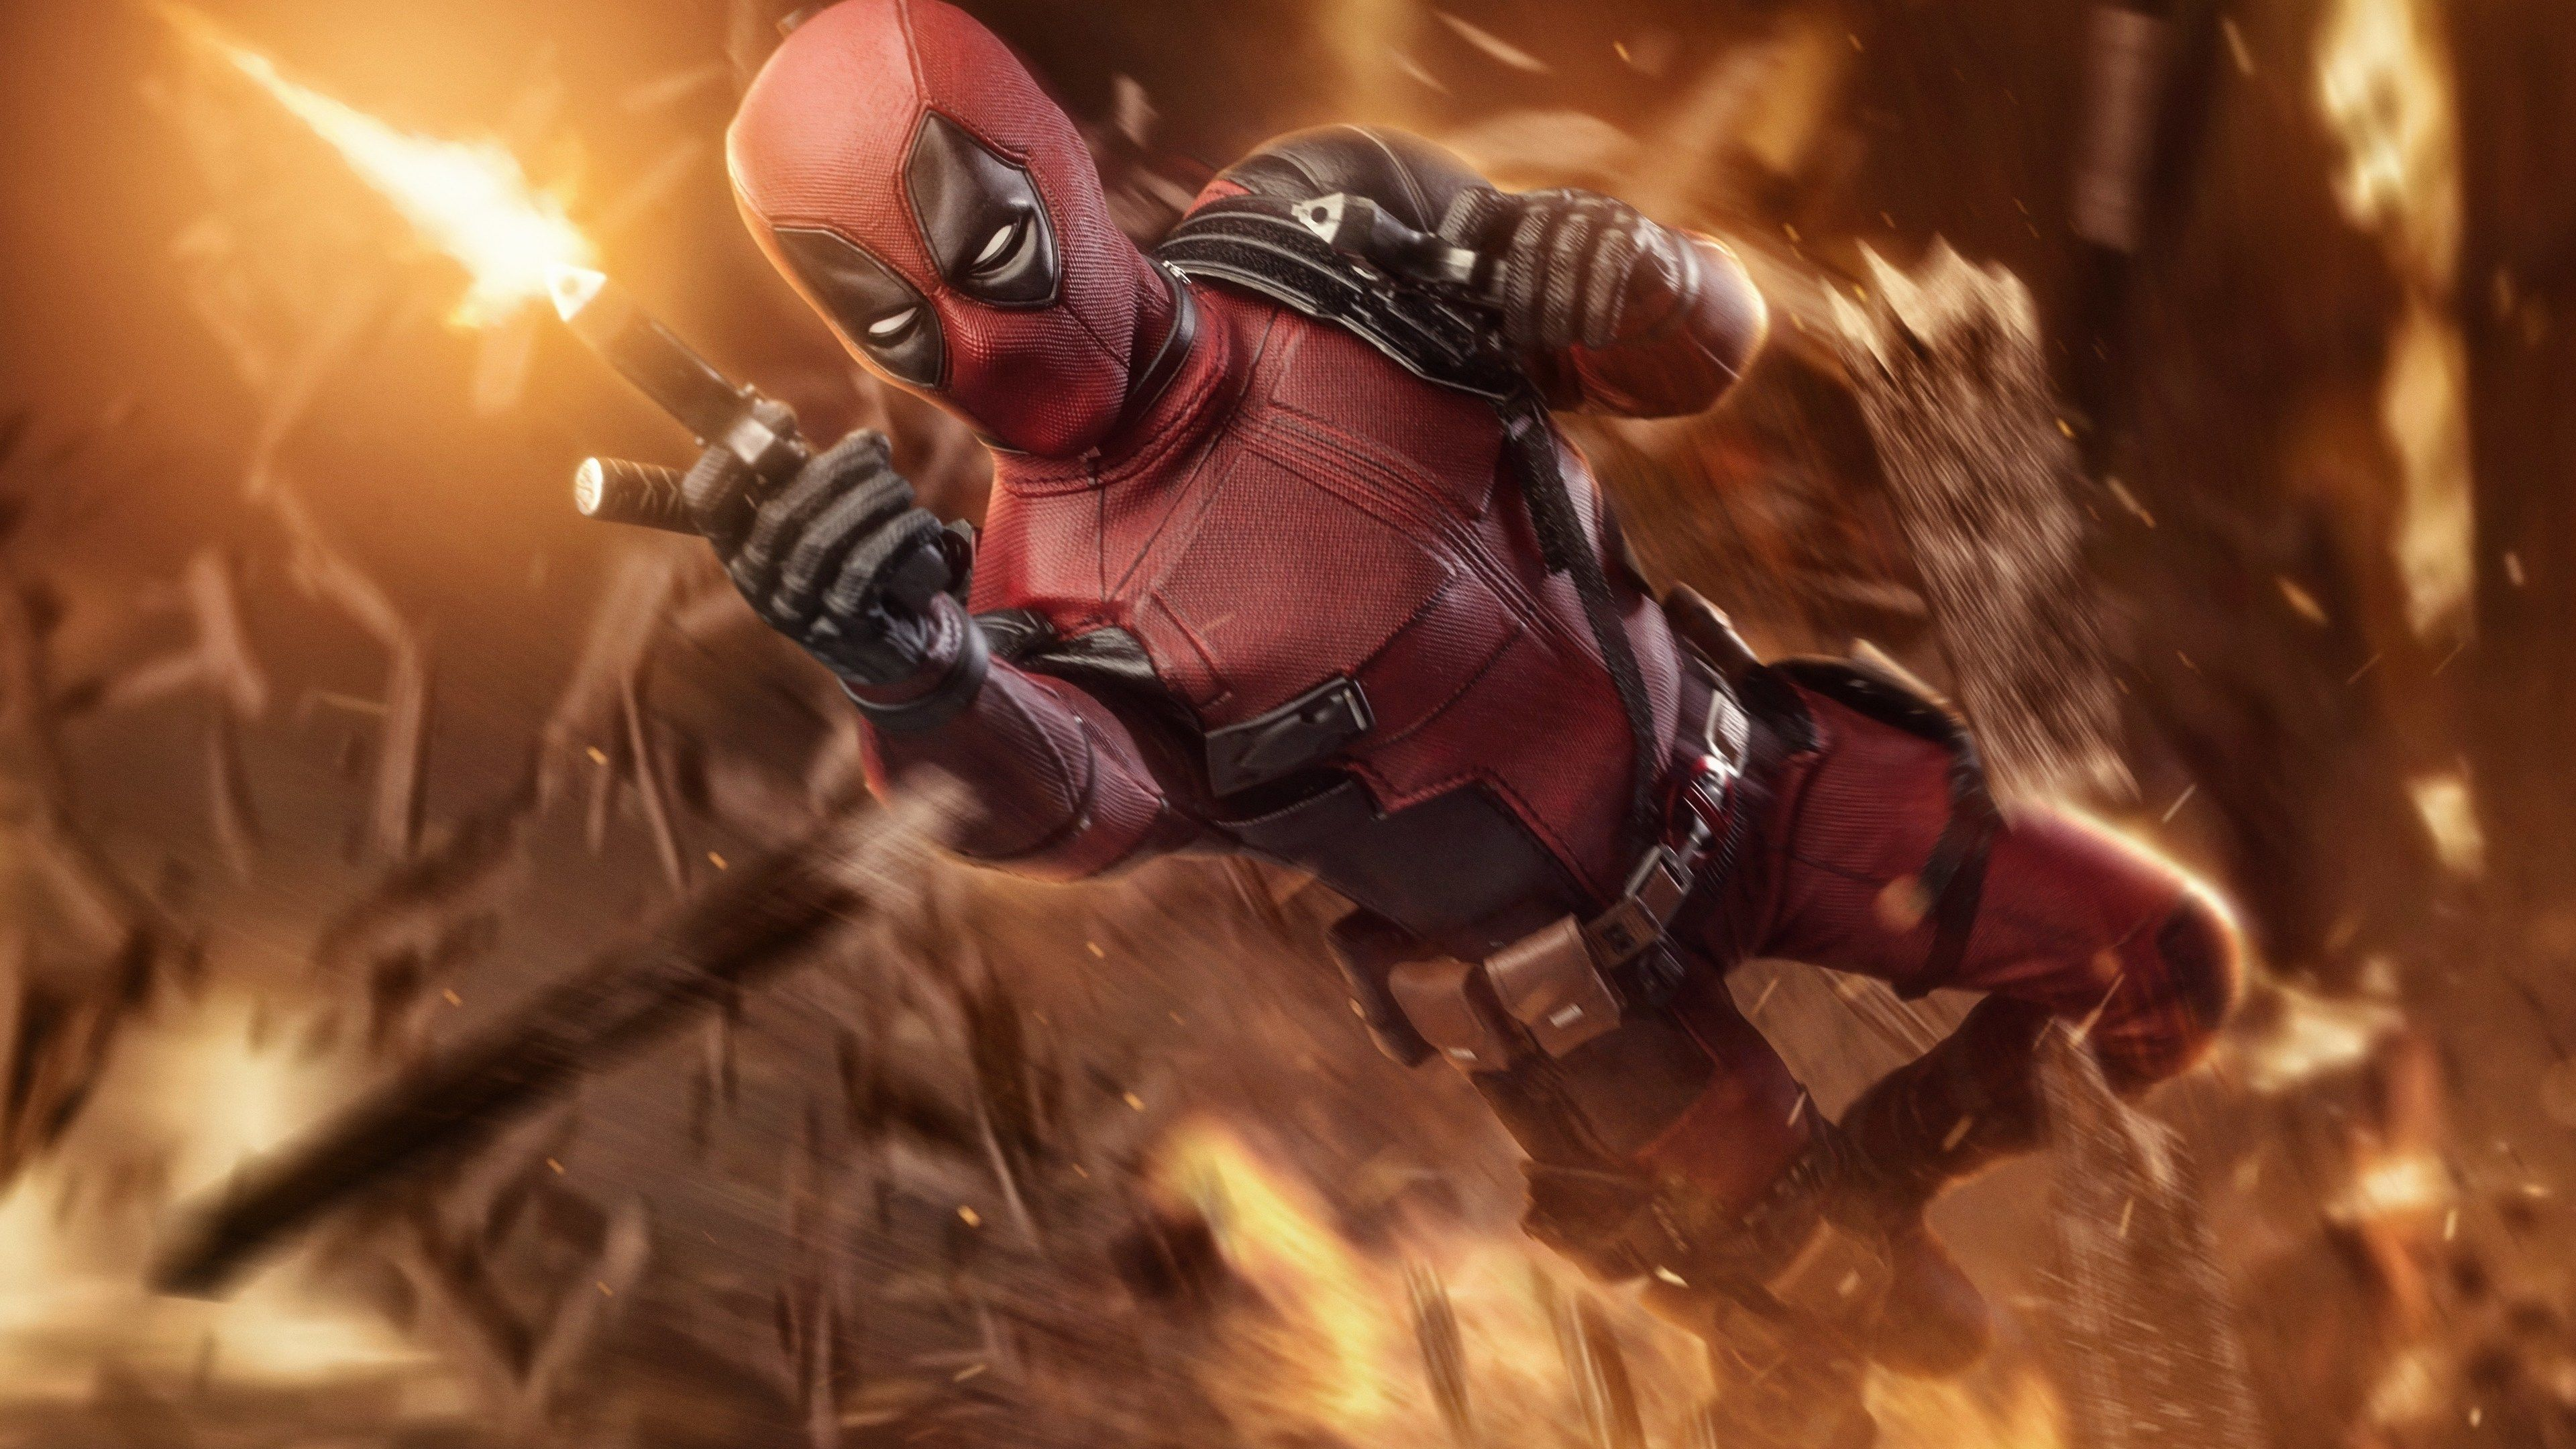 Deadpool 5k Superheroes Wallpapers Hd Wallpapers Deadpool Wallpapers 5k Wallpapers 4 Deadpool Wallpaper Deadpool Wallpaper Desktop Deadpool Wallpaper Funny